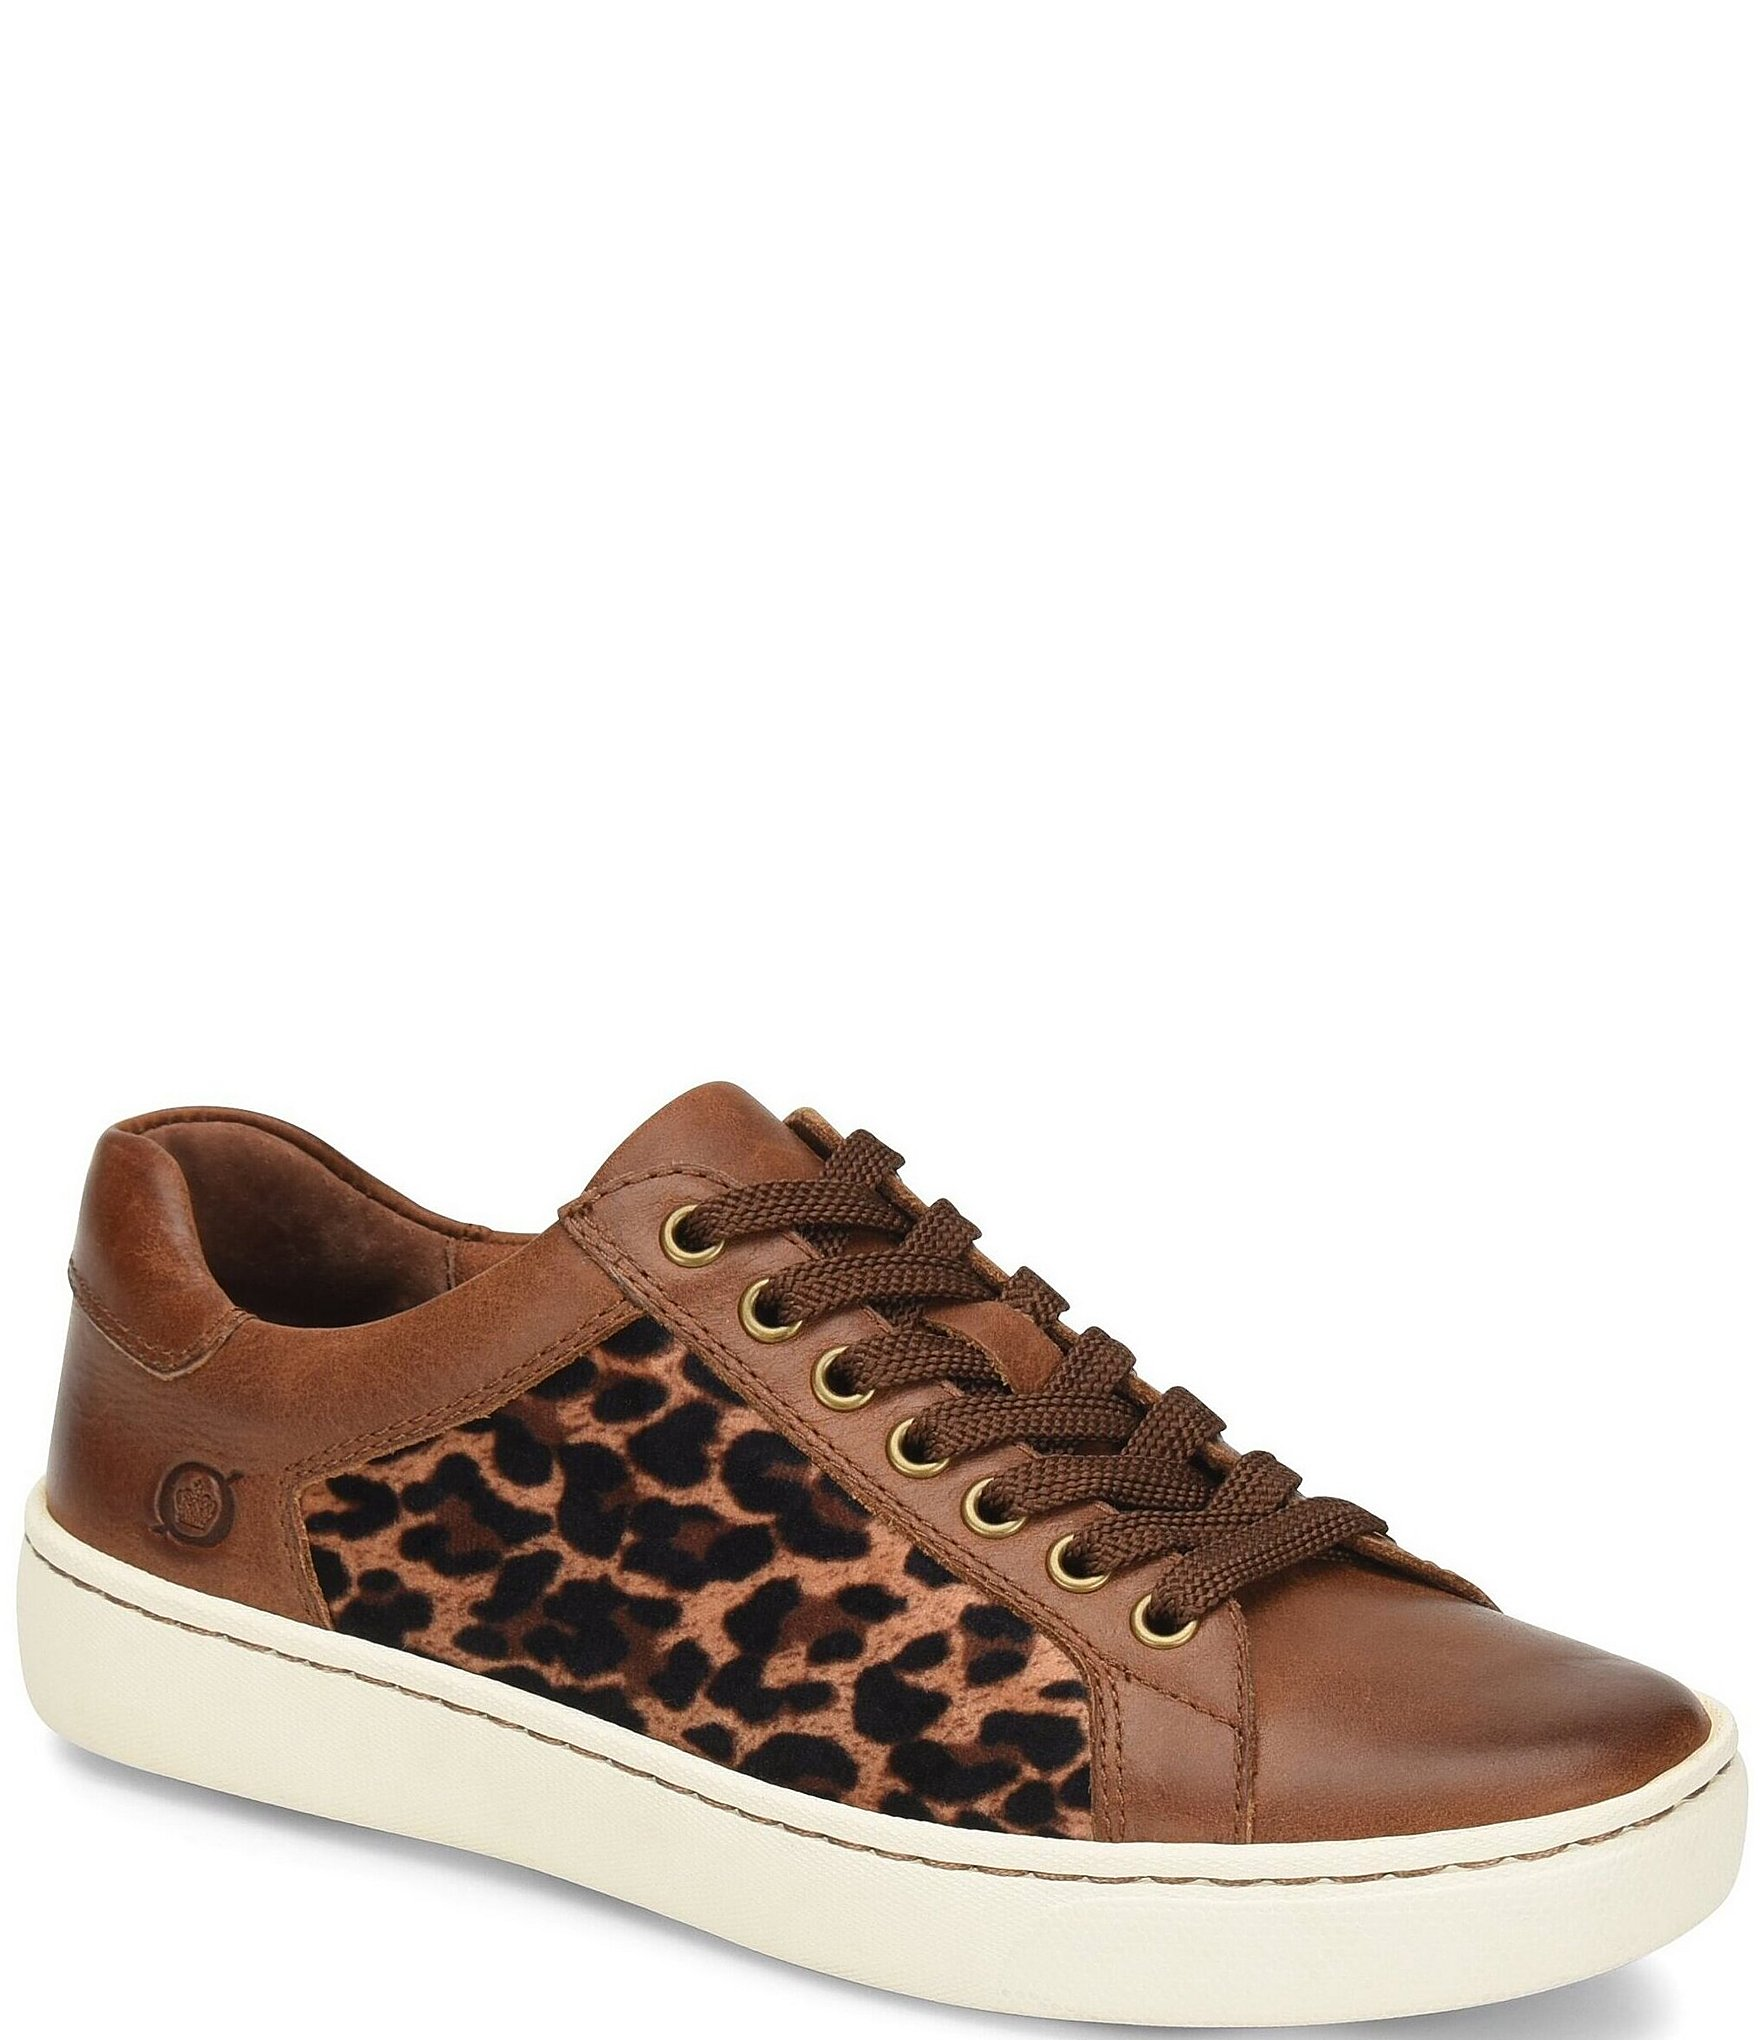 29557d85baa Born Sur Leather Leopard Print Fabric Sneakers